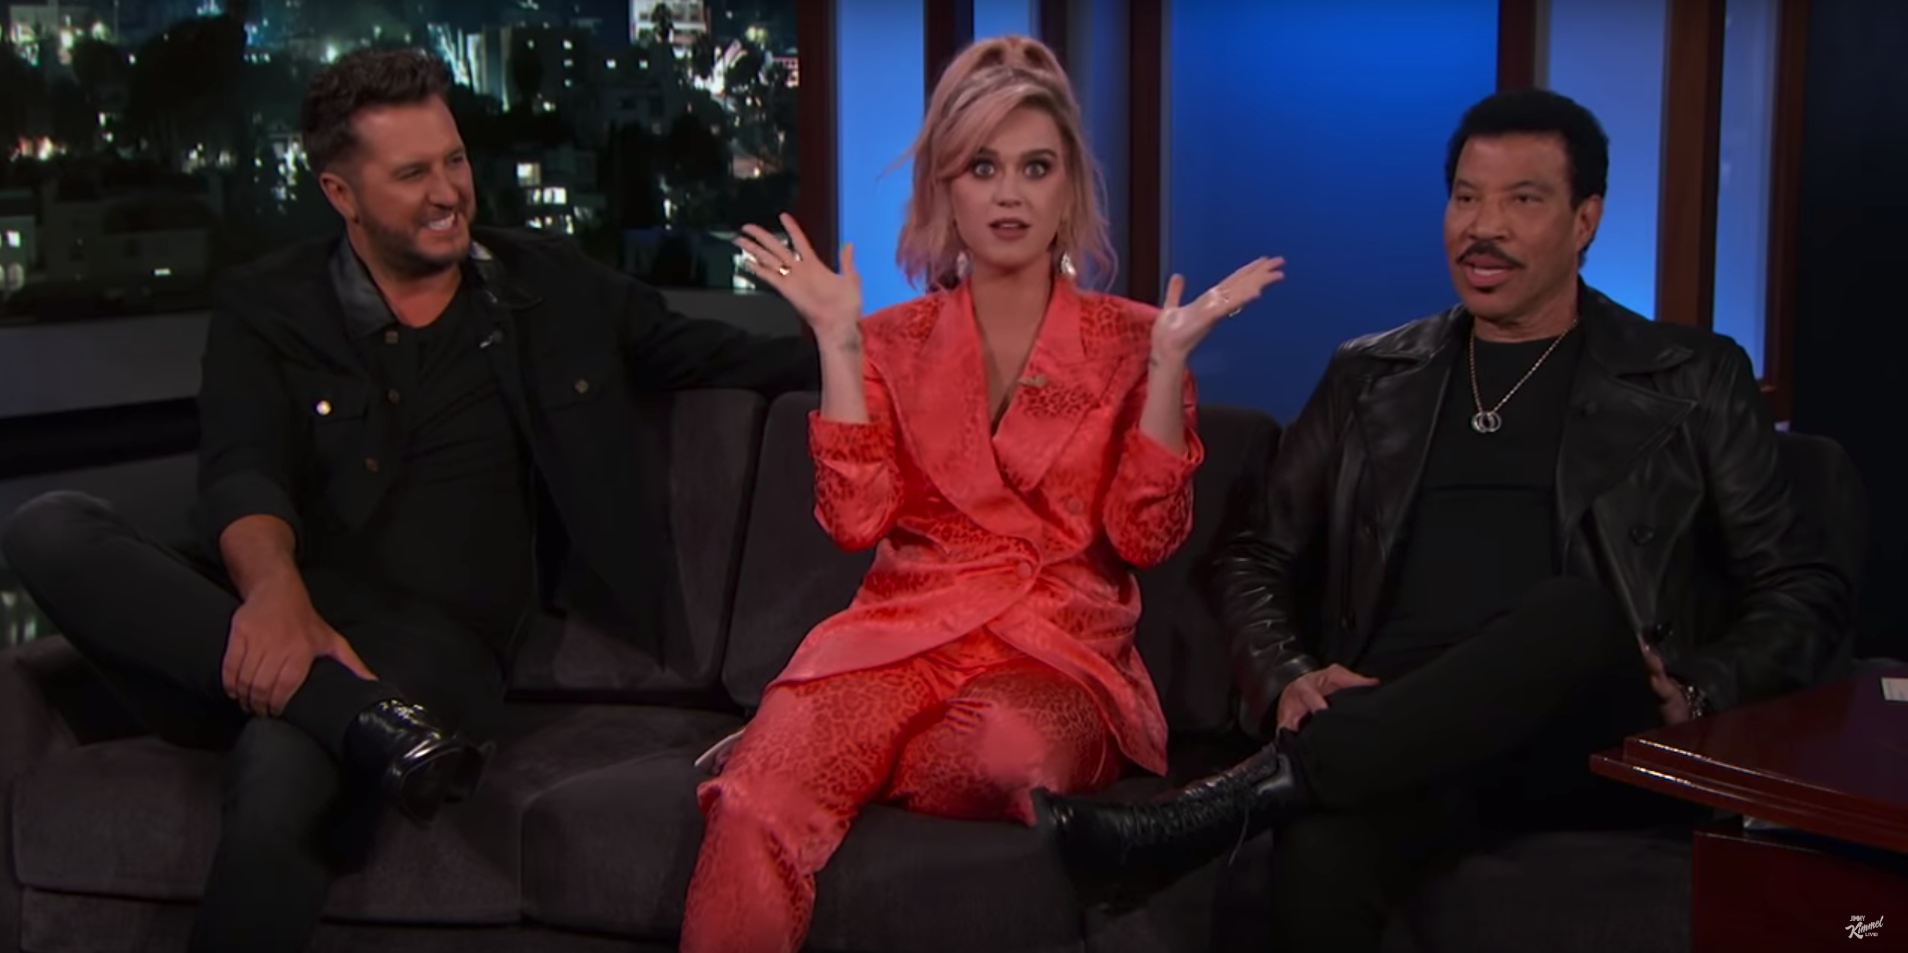 Katy Perry Has Not Invited Luke Bryan Or Lionel Richie To Her Wedding, And The Moment They Found Out Is Very Awkward